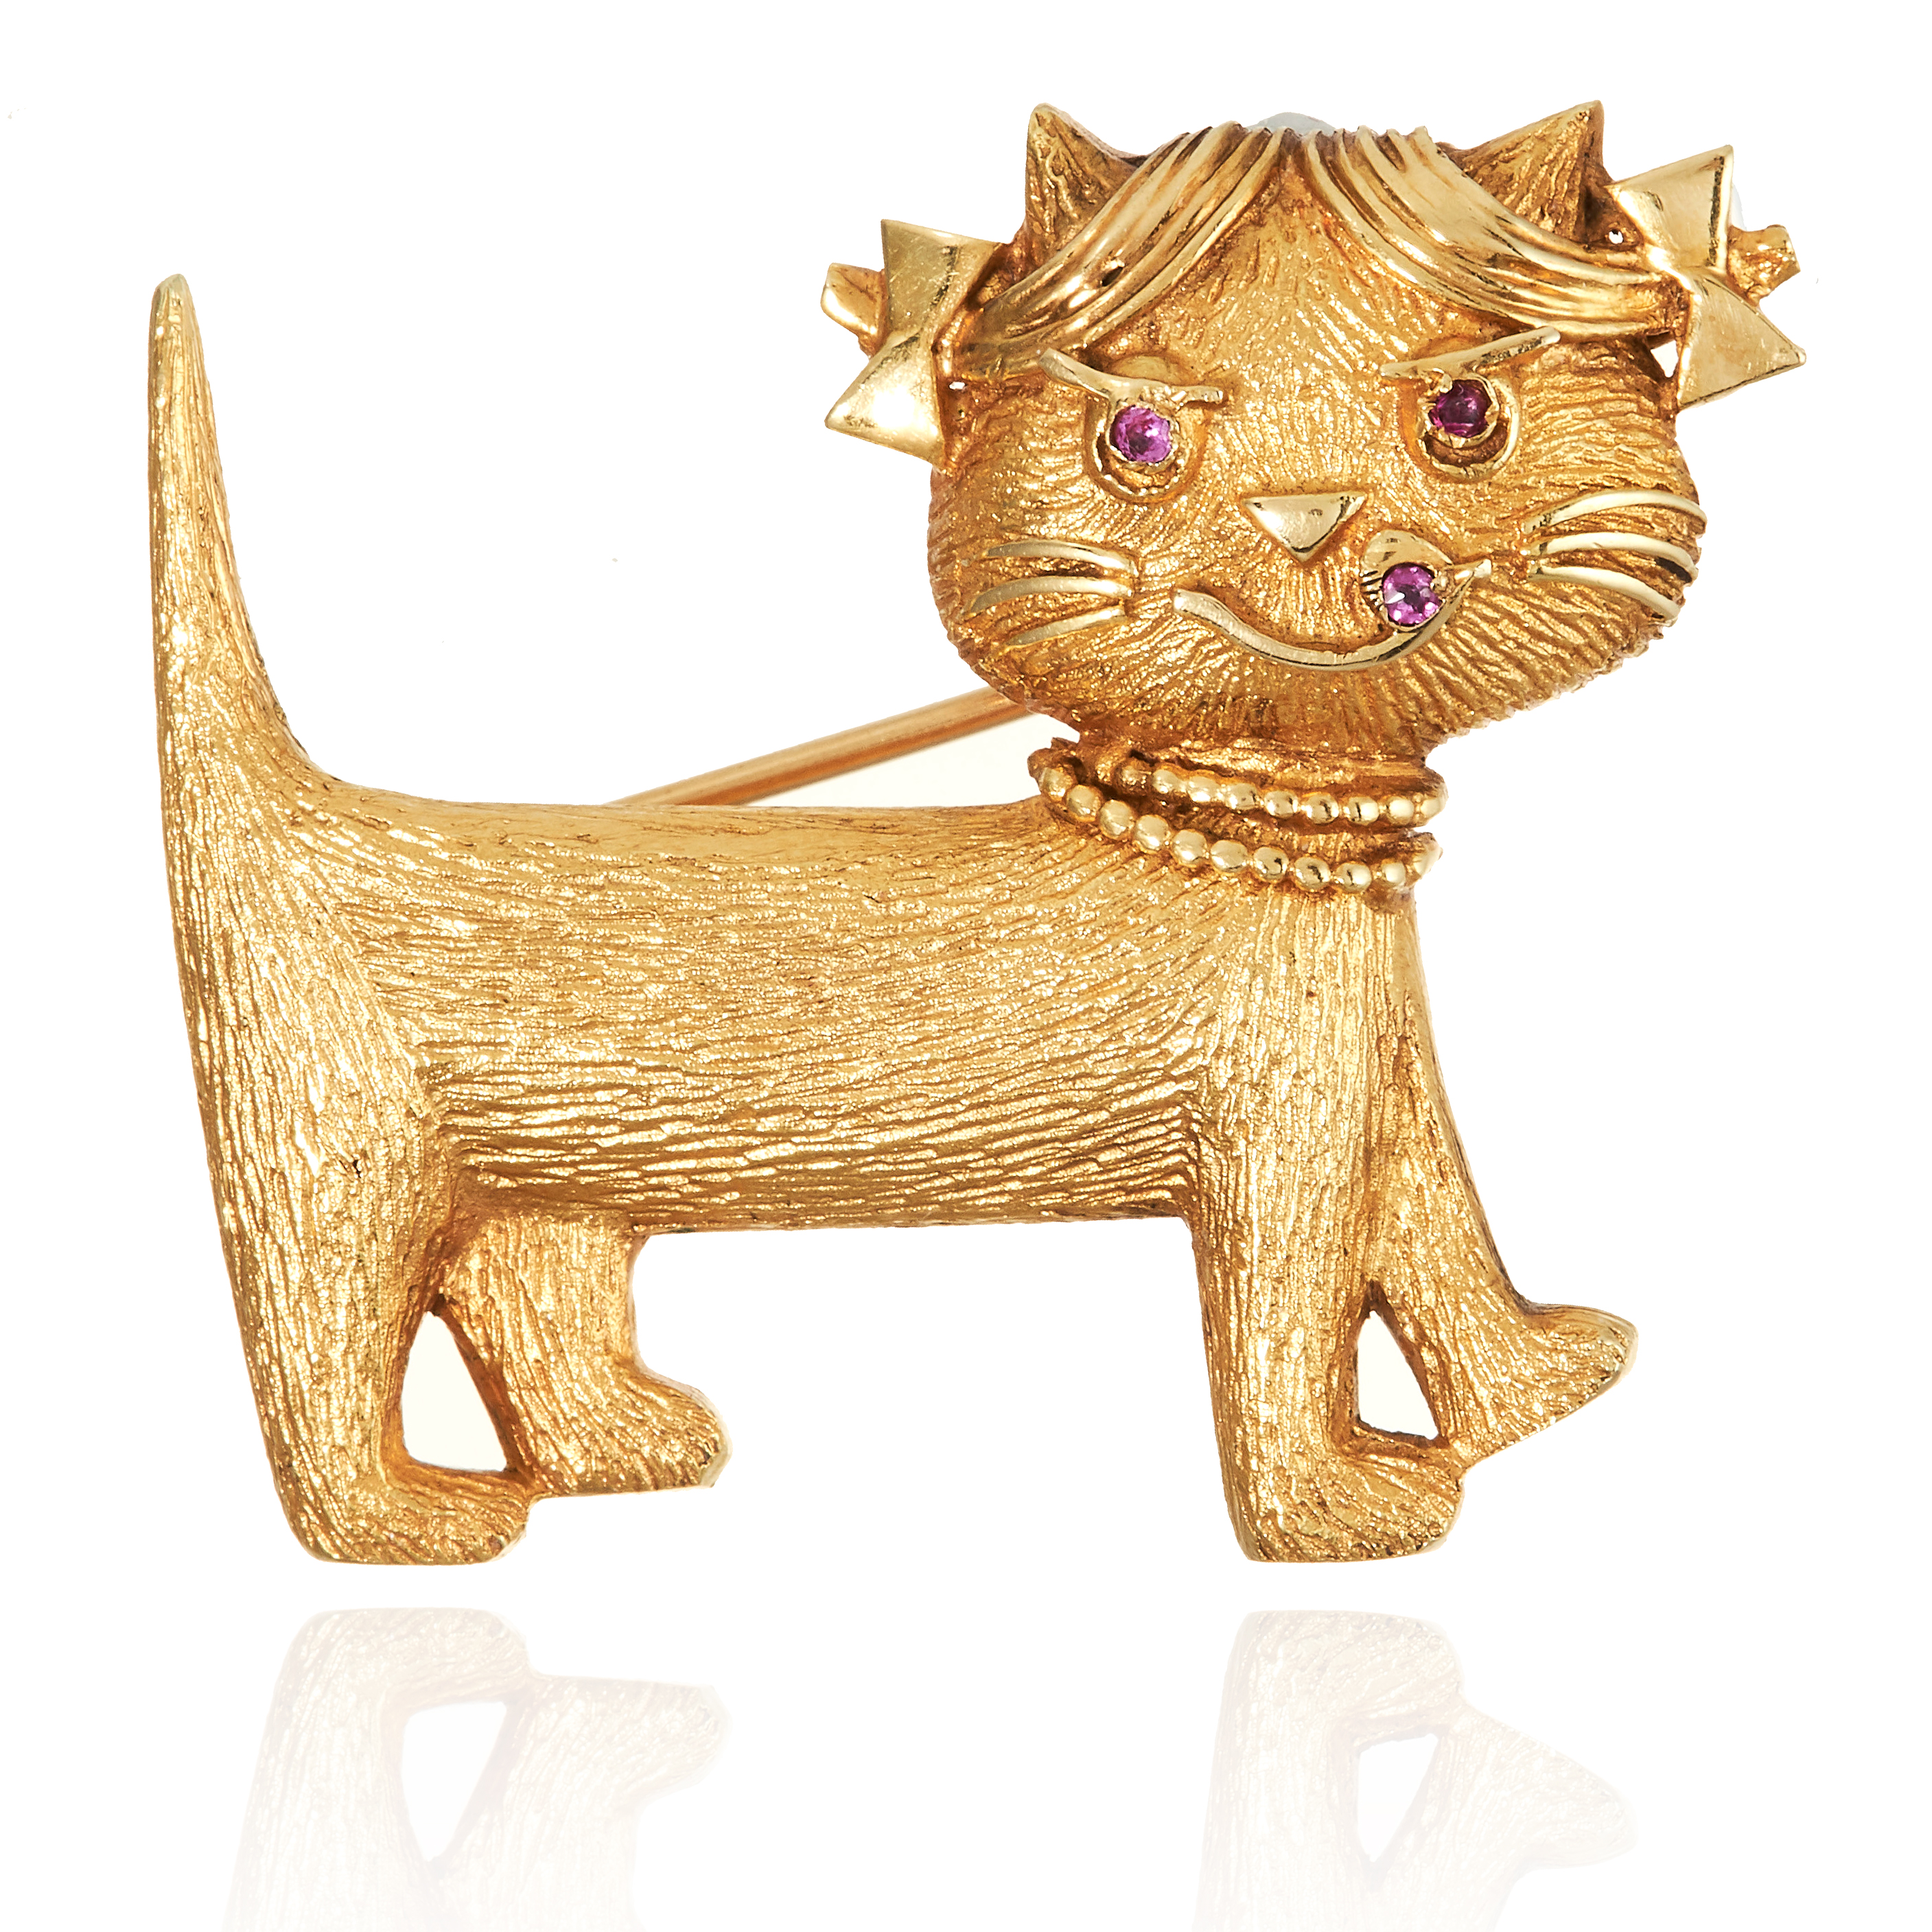 A RUBY CAT BROOCH in 18ct yellow gold, designed as a cat with ruby jewelled eyes and tongue,